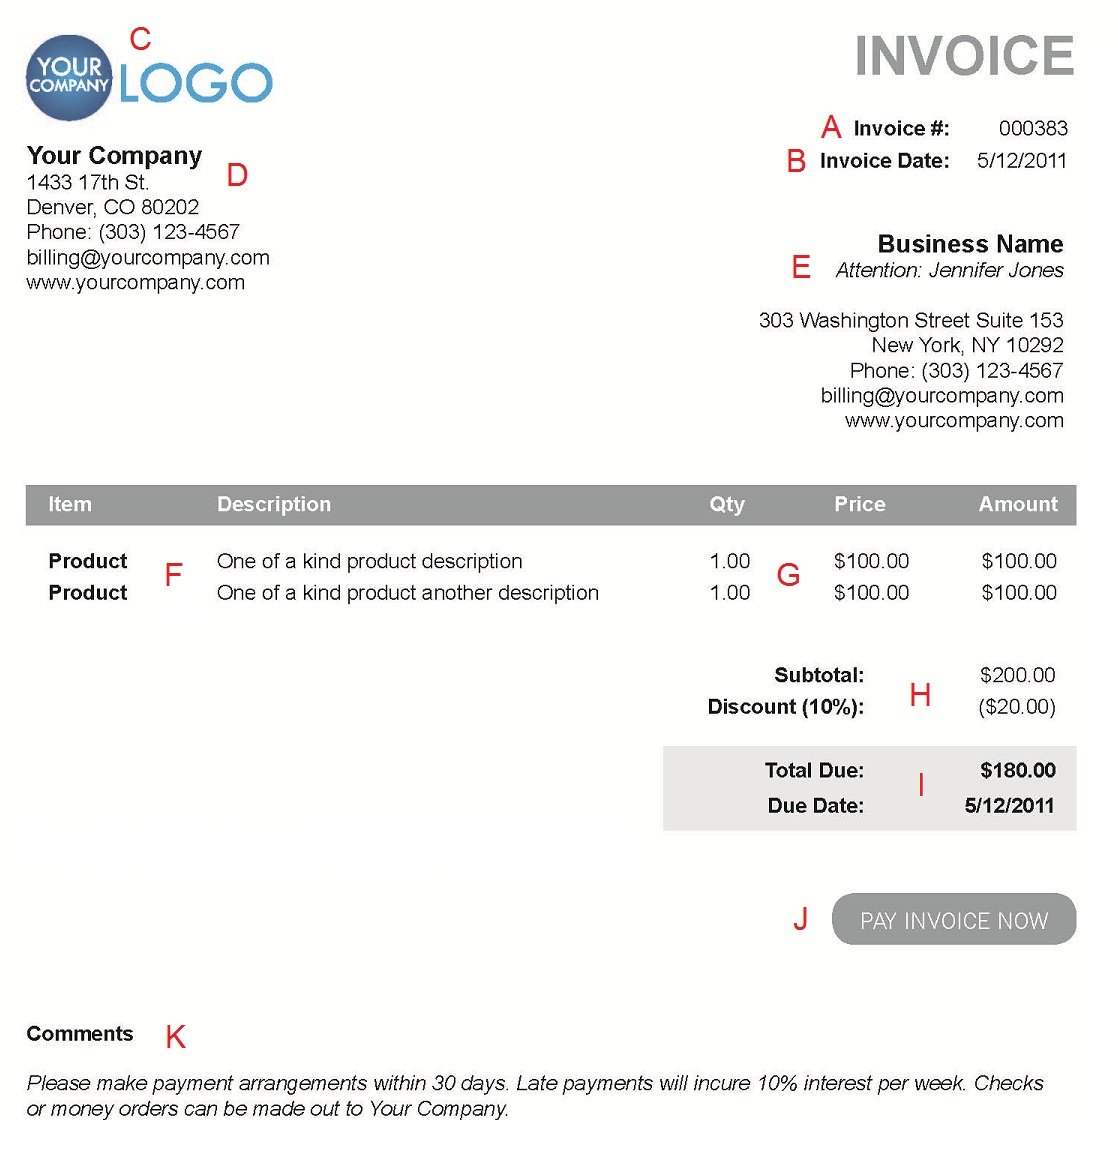 Soulfulpowerus  Ravishing The  Different Sections Of An Electronic Payment Invoice With Marvelous A  With Endearing French For Receipt Also Ipad Receipt Scanner In Addition Receipt Of Money Template And Sample Of Receipts As Well As Receipt Printer Rolls Additionally Donation Receipt Templates From Paysimplecom With Soulfulpowerus  Marvelous The  Different Sections Of An Electronic Payment Invoice With Endearing A  And Ravishing French For Receipt Also Ipad Receipt Scanner In Addition Receipt Of Money Template From Paysimplecom